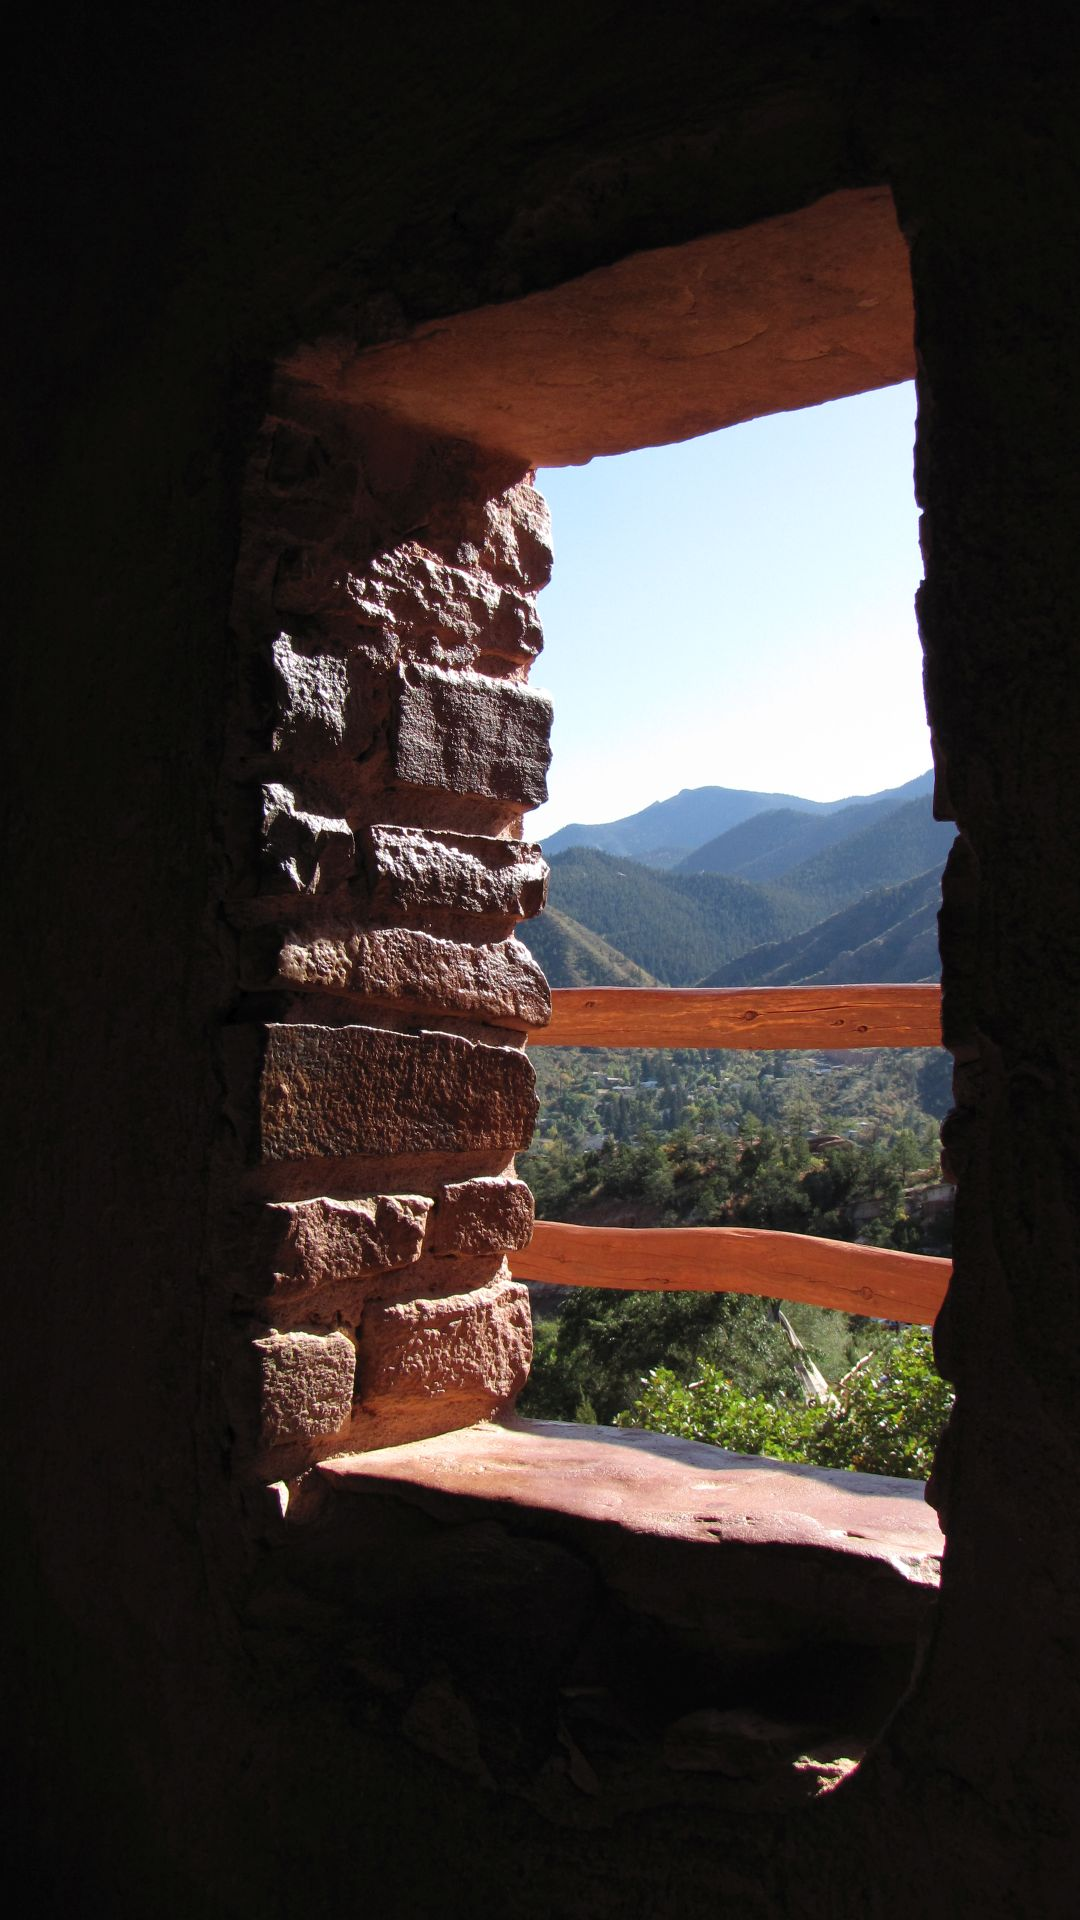 Cliff dwellings, nr Manitou Springs, CO, USA - Framing!